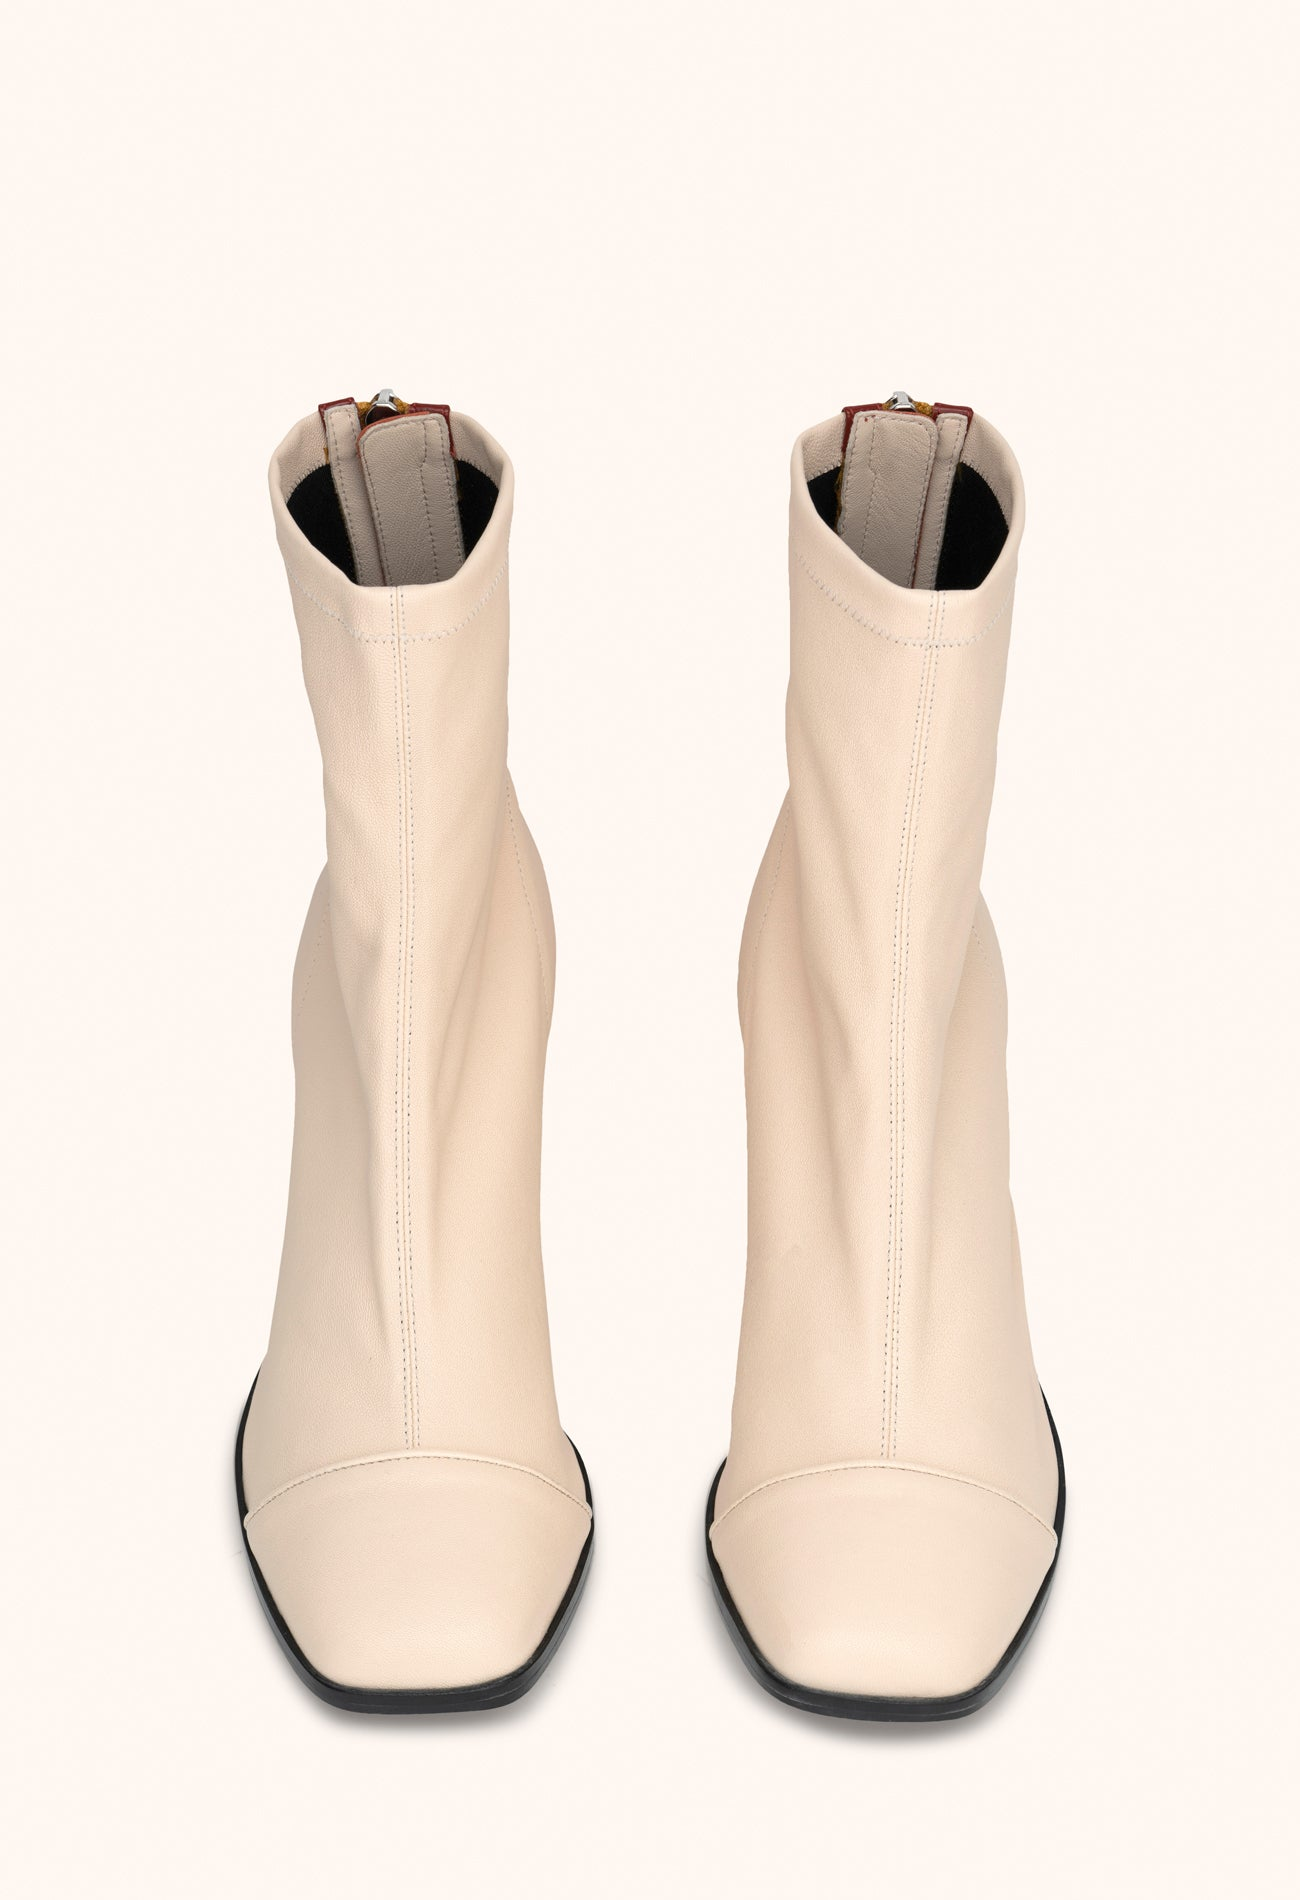 Aria ankle boots in white nappa stretch